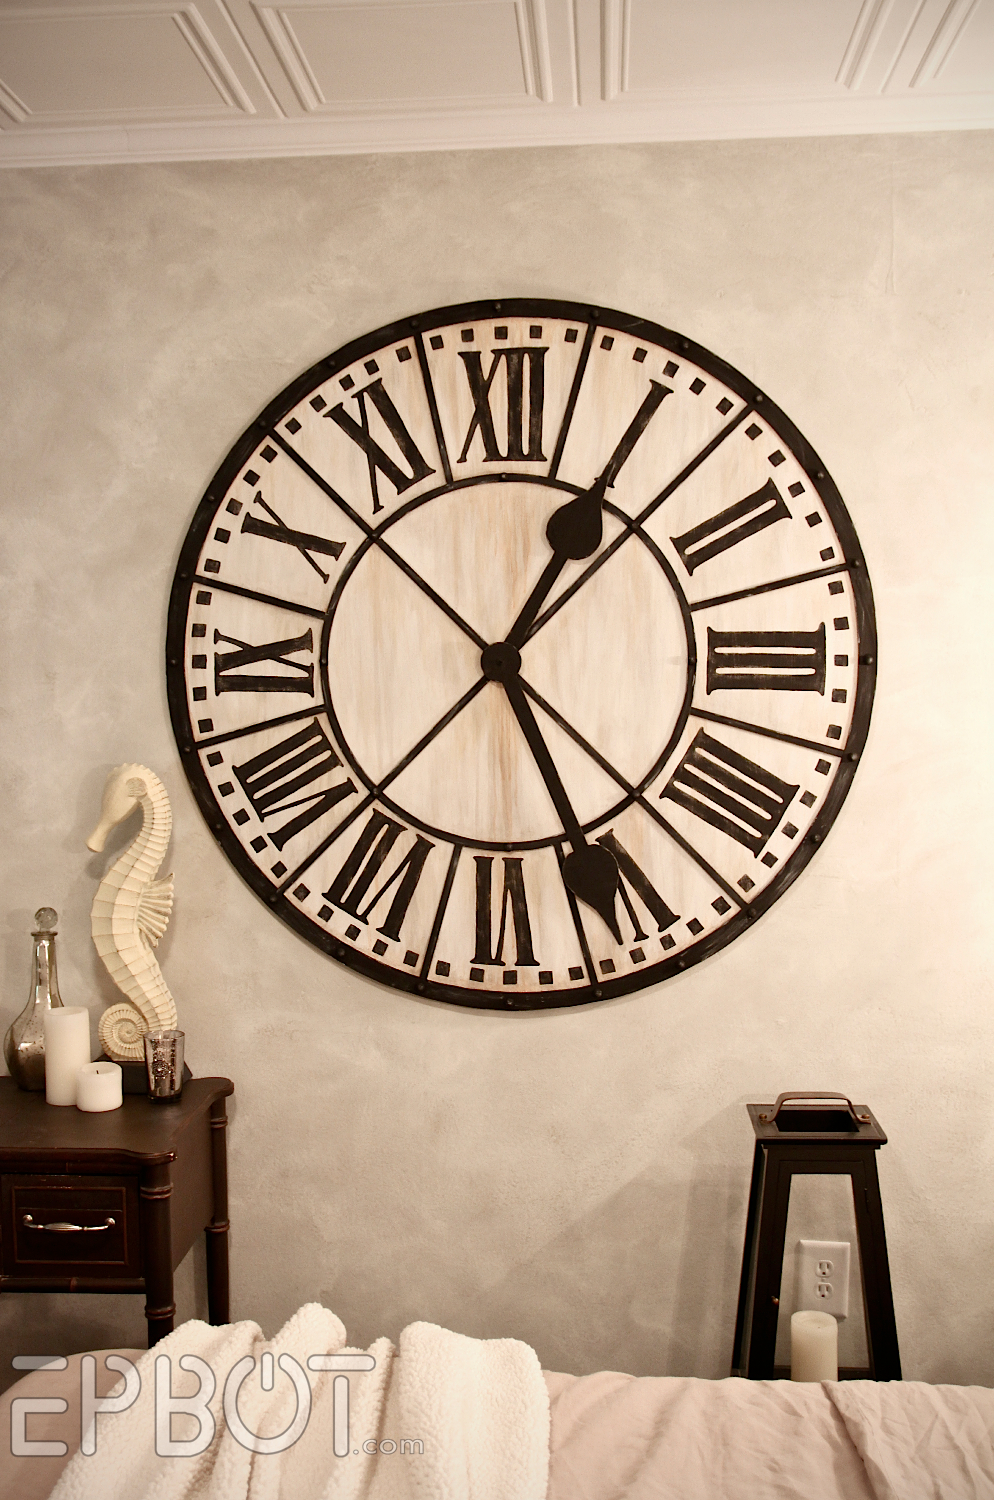 Diy Giant Tower Wall Clock With Oversized Clocks